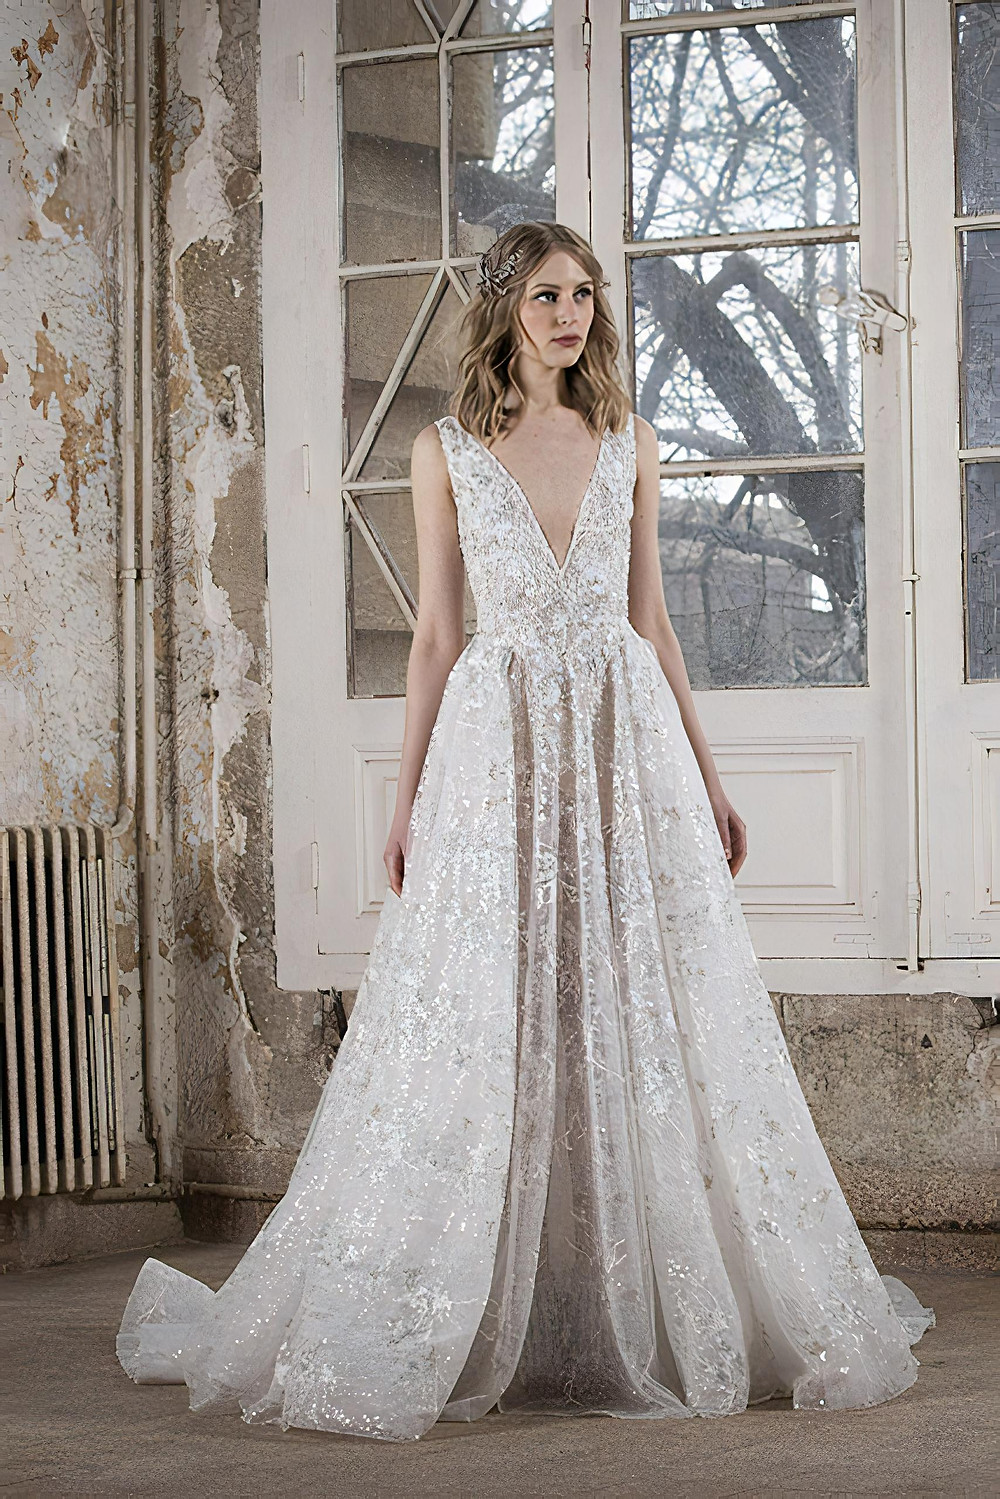 A deep-V wedding gown in embroidered lace accentuated with an illusion of an overskirt with large frills